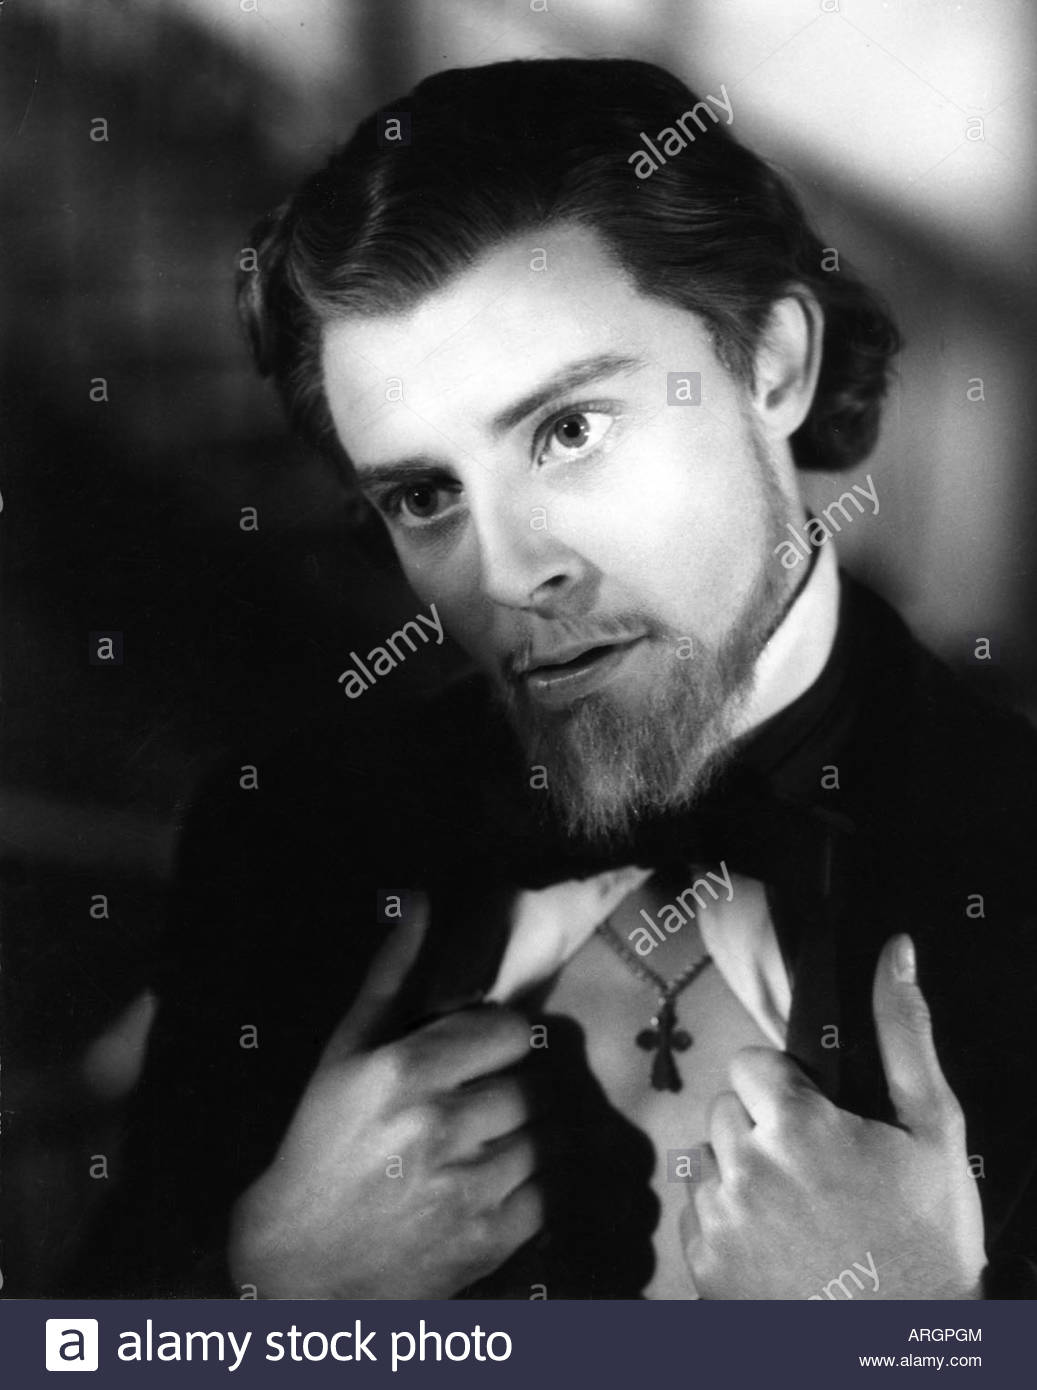 Philipe, Gerard, 4.12.1922 - 22.11.1959, French actor, portrait, scene from movie, 'The Idiot', FRA 1946, - Stock Image